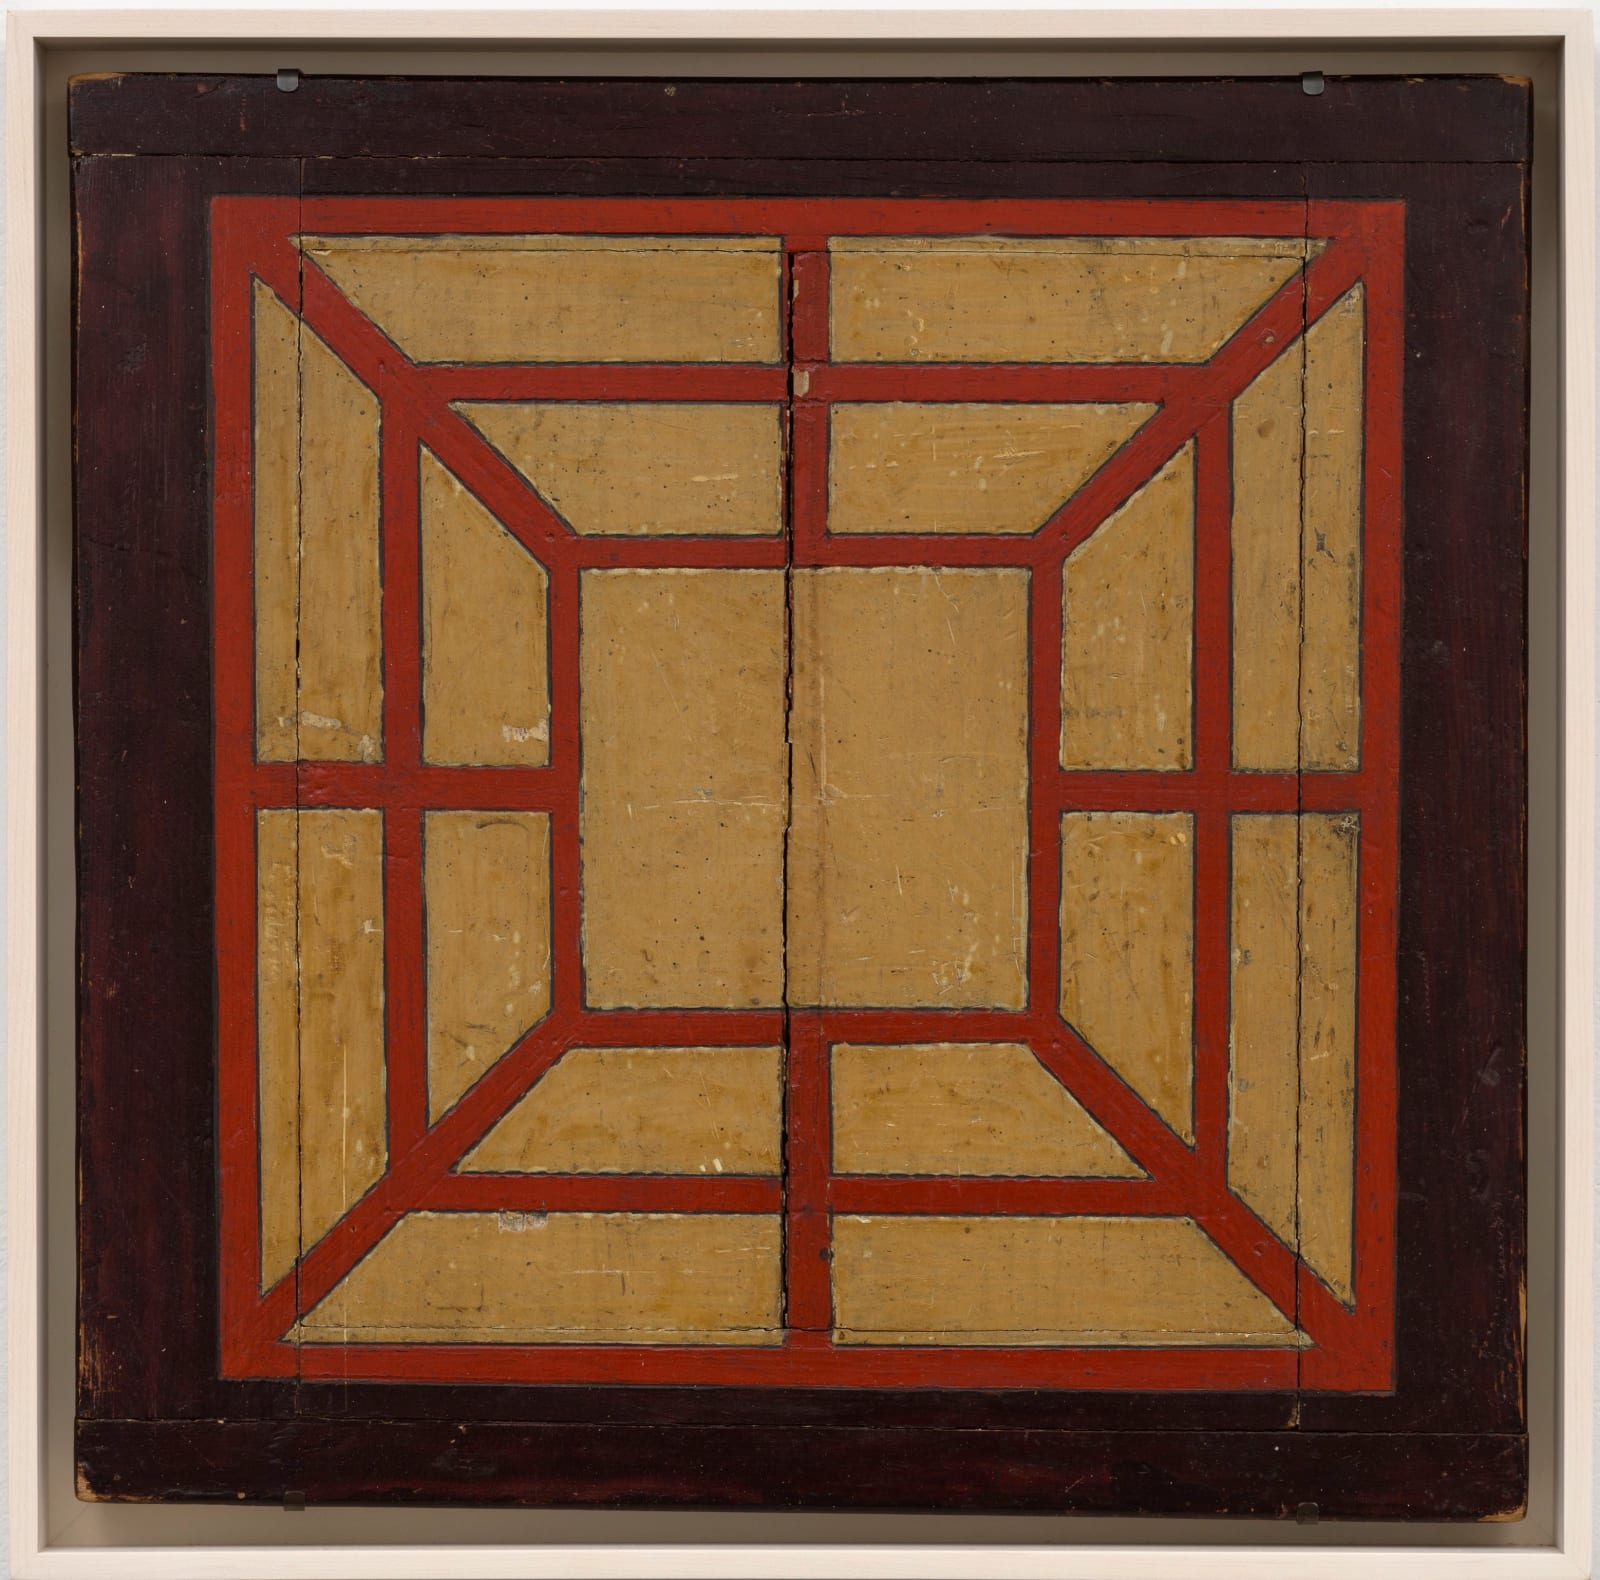 MILLS GAME BOARD, C. 1910-20 Oil enamel on wood panel 17 1/4 x 18 1/4 in. (AU 306)